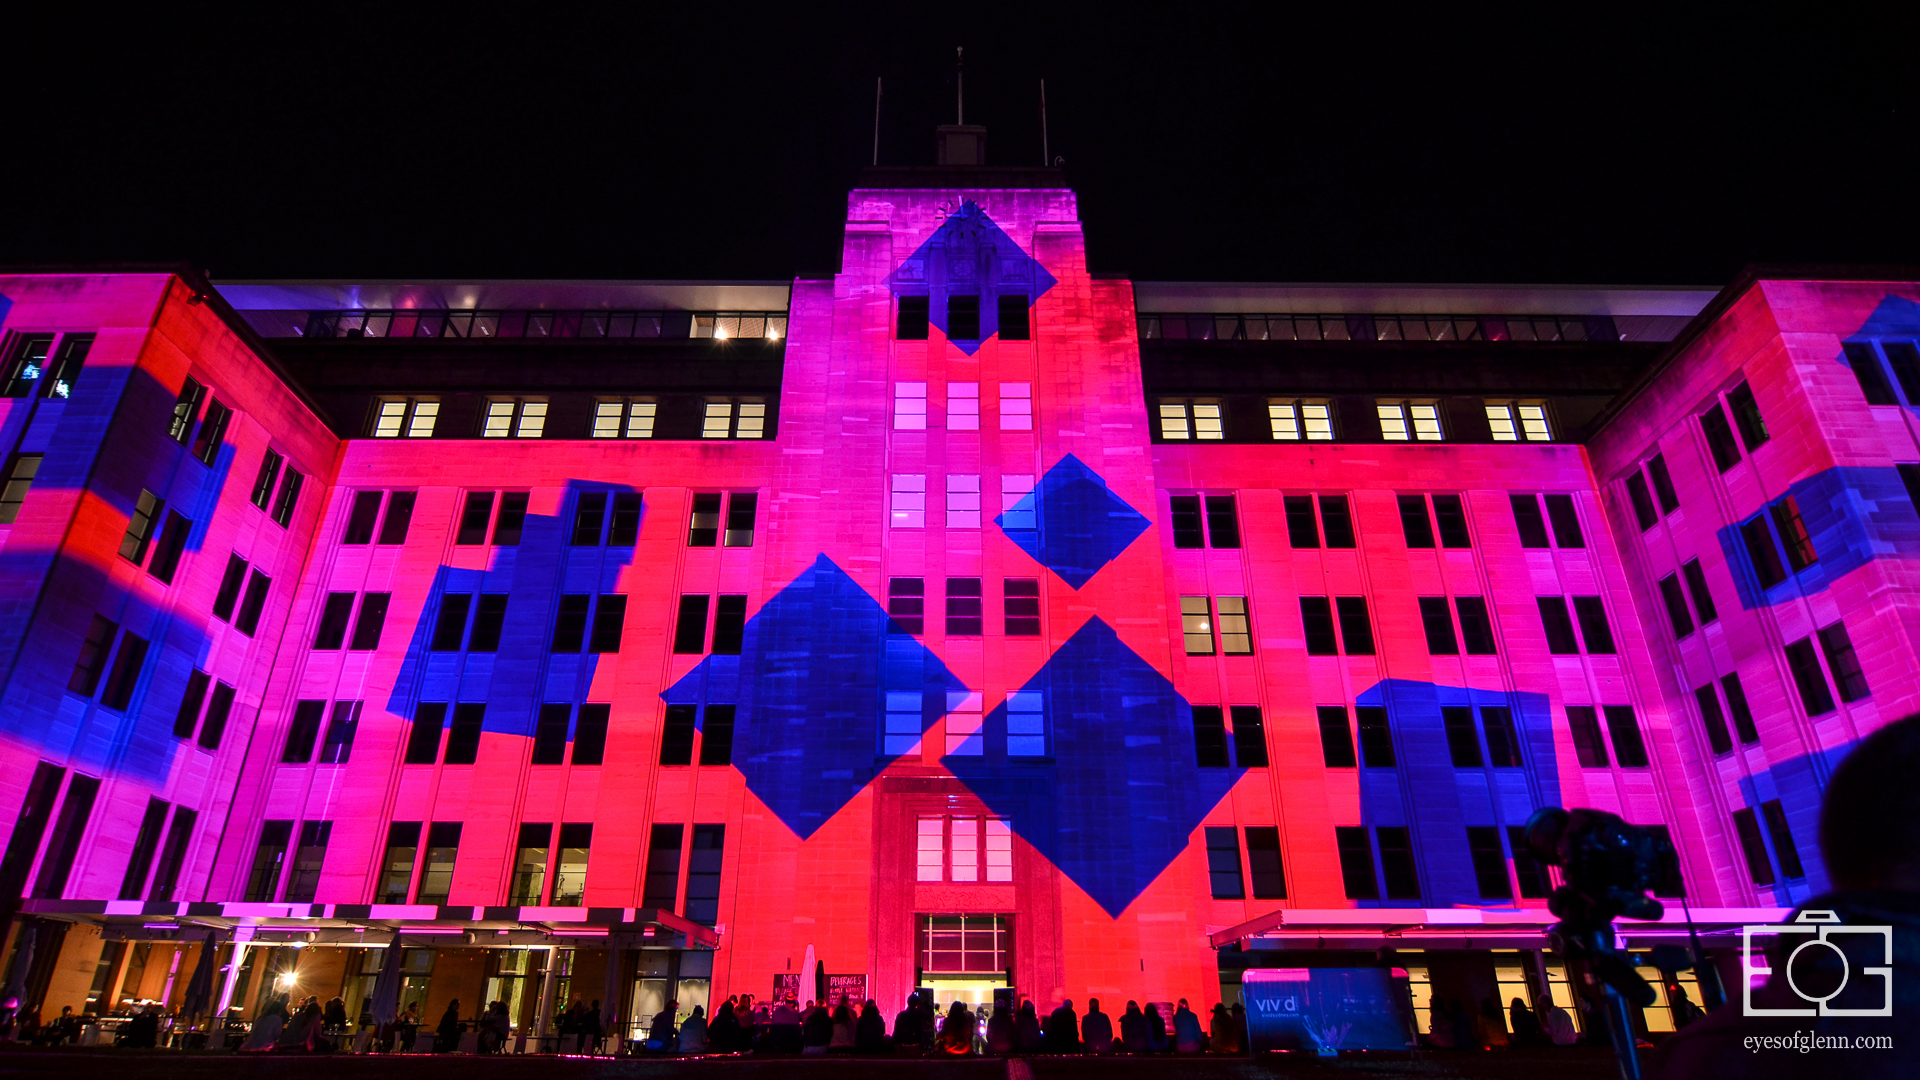 Museum of Contemporary Art, Vivid Sydney 2013